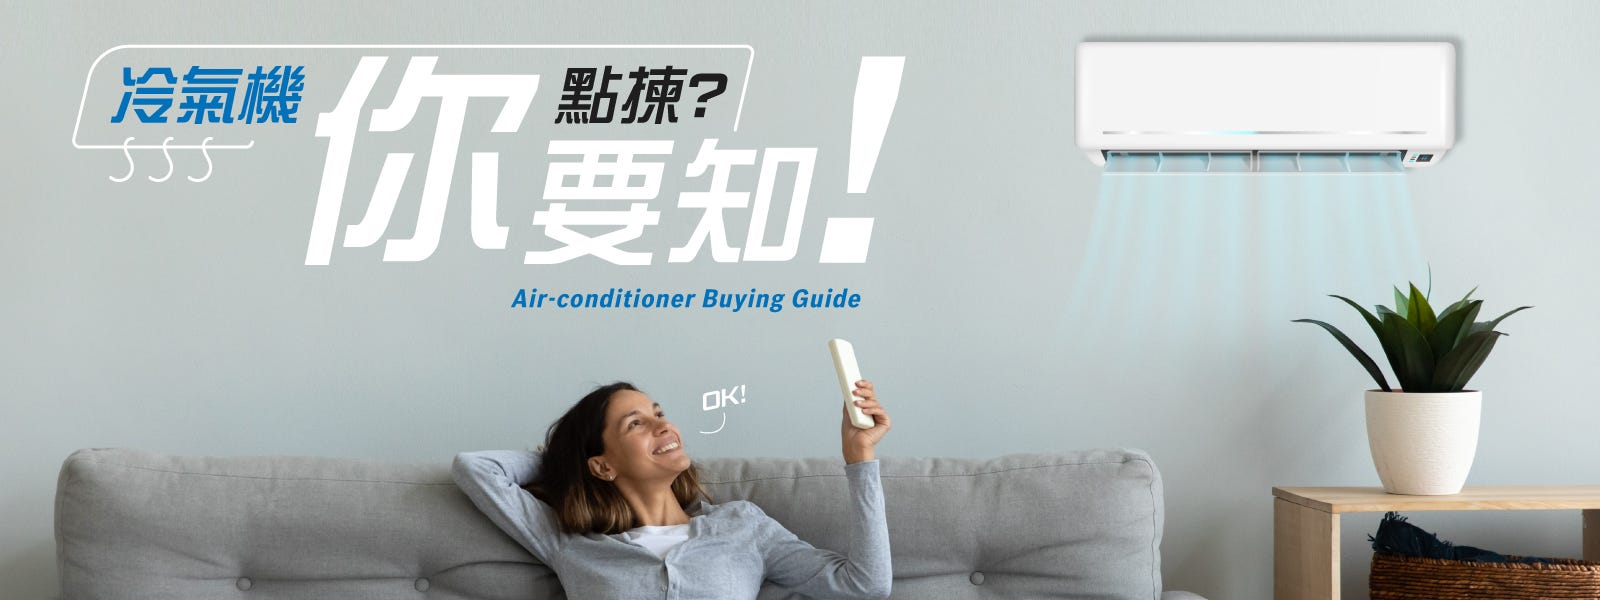 Air Conditioner Buying Guide